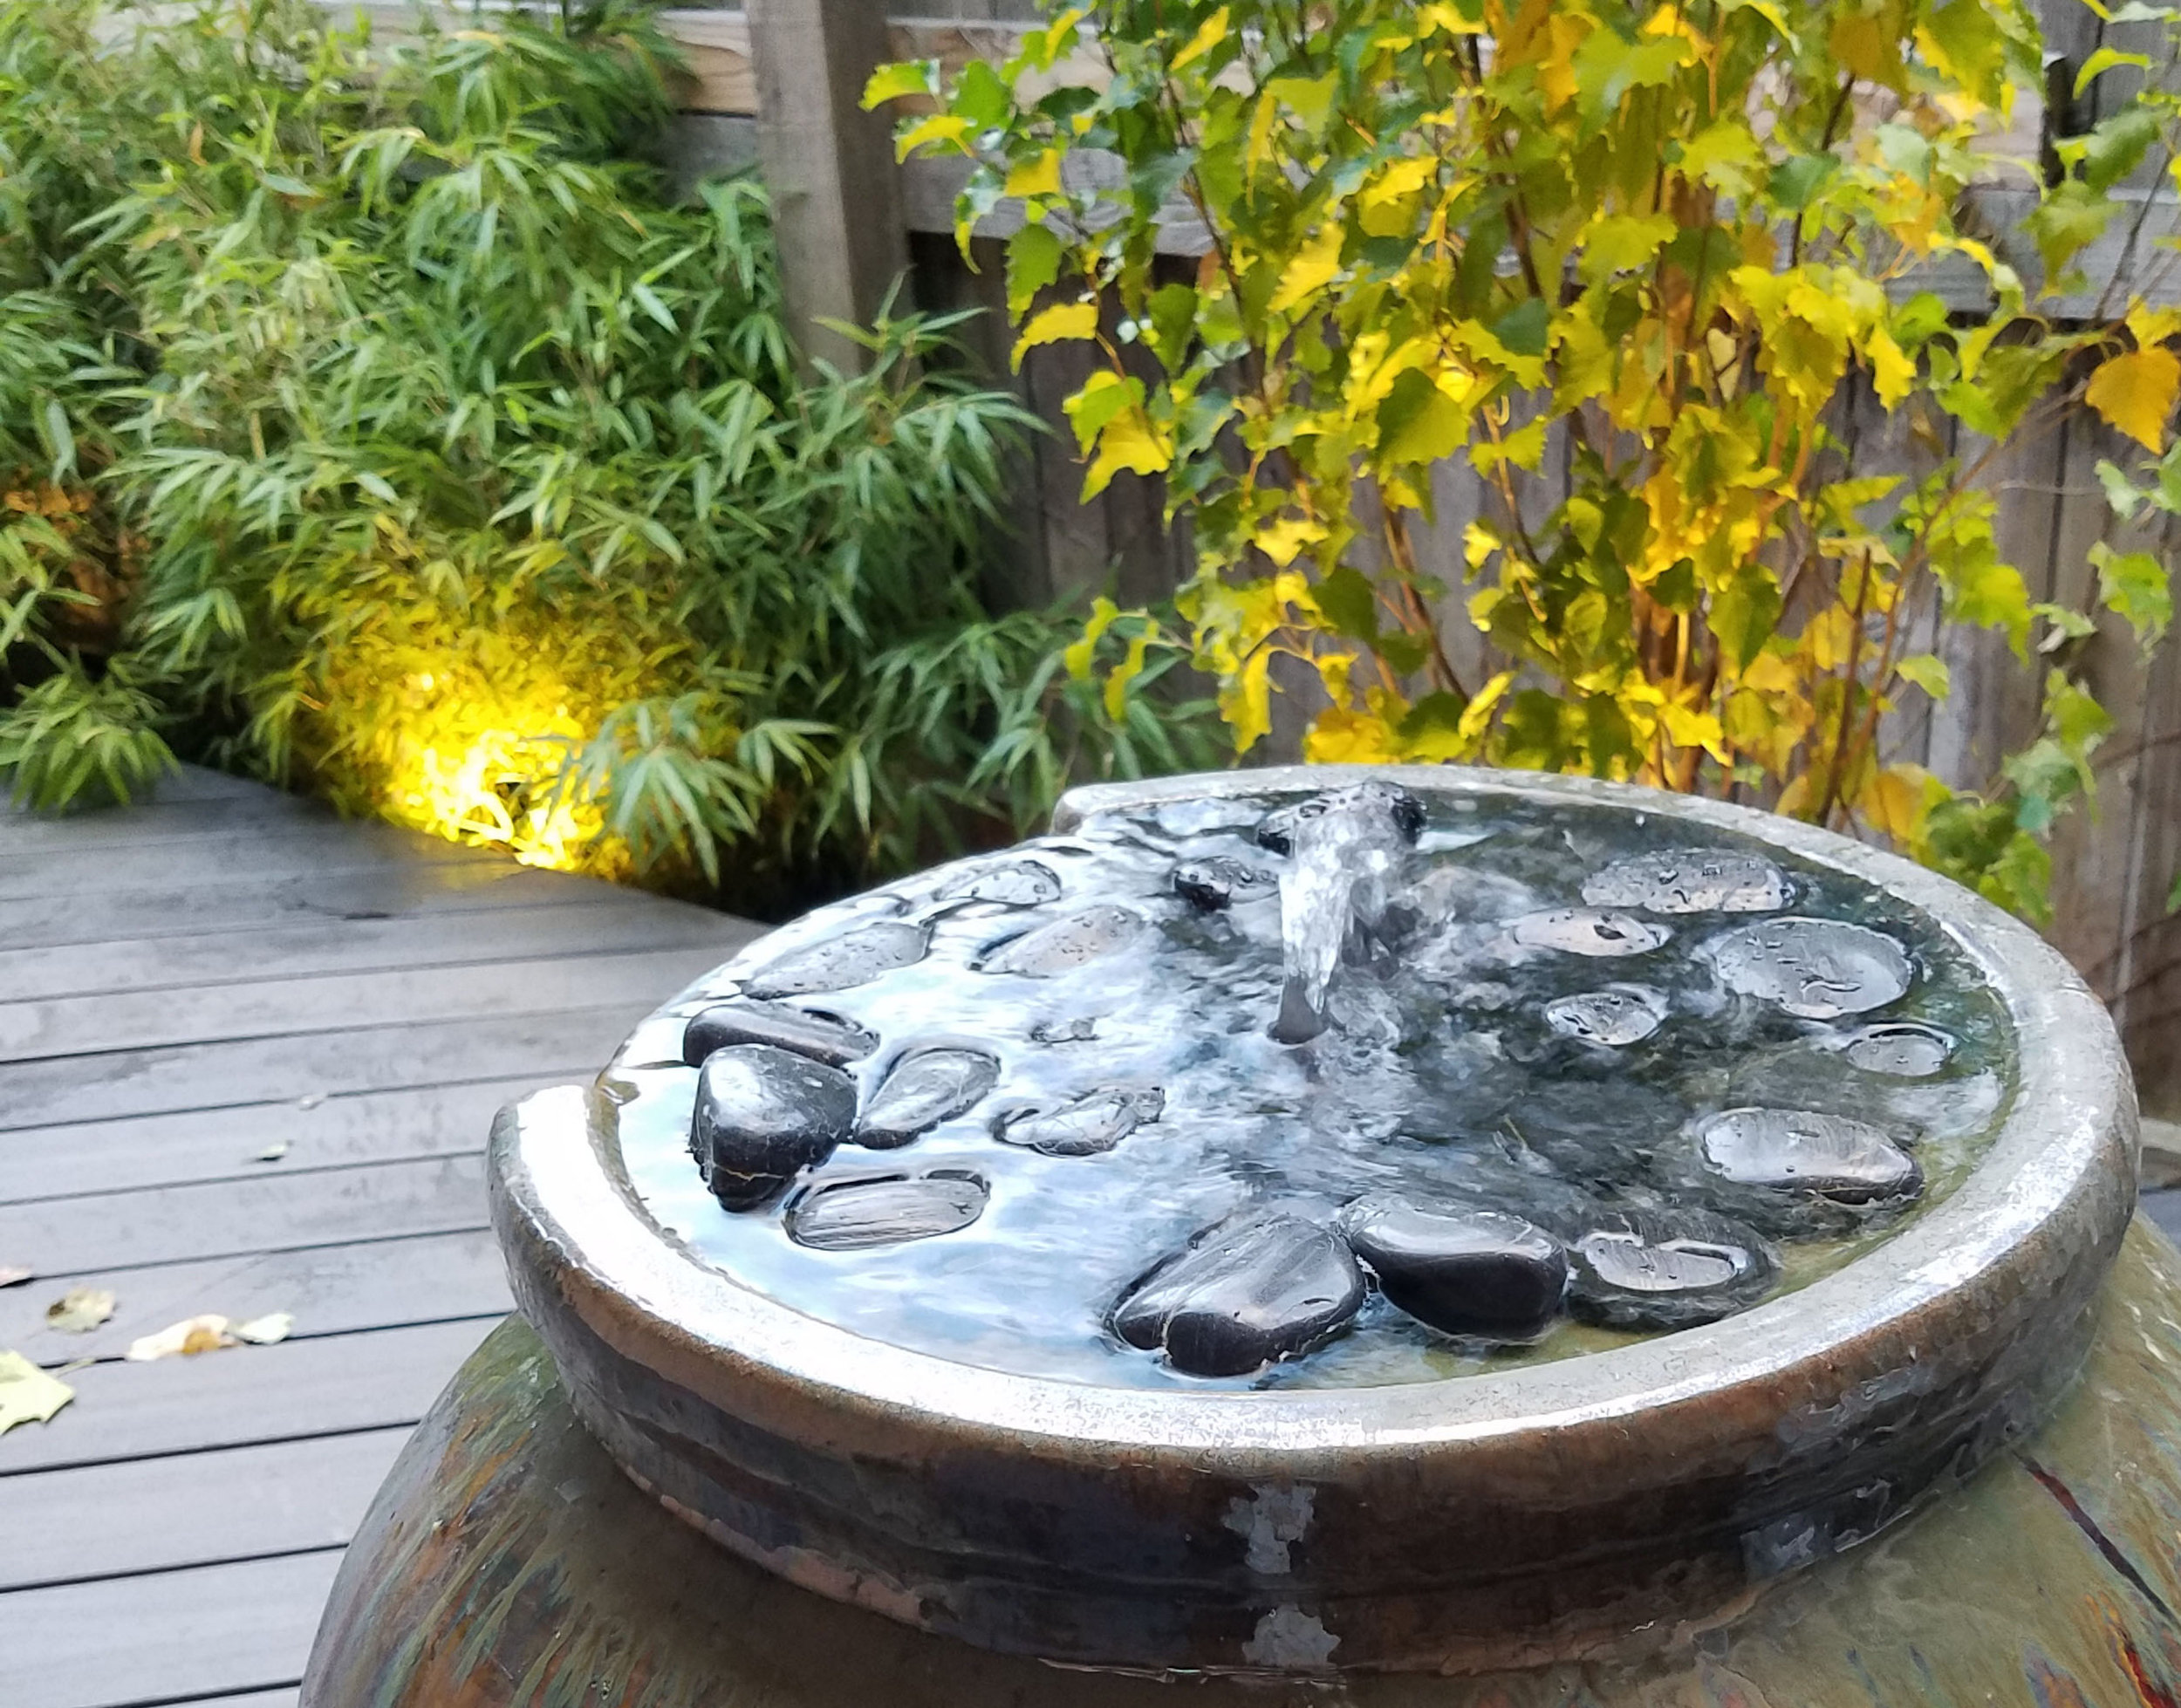 A WATER FEATURE PROVIDES THE MUSIC TO THIS TRANQUIL SCENE